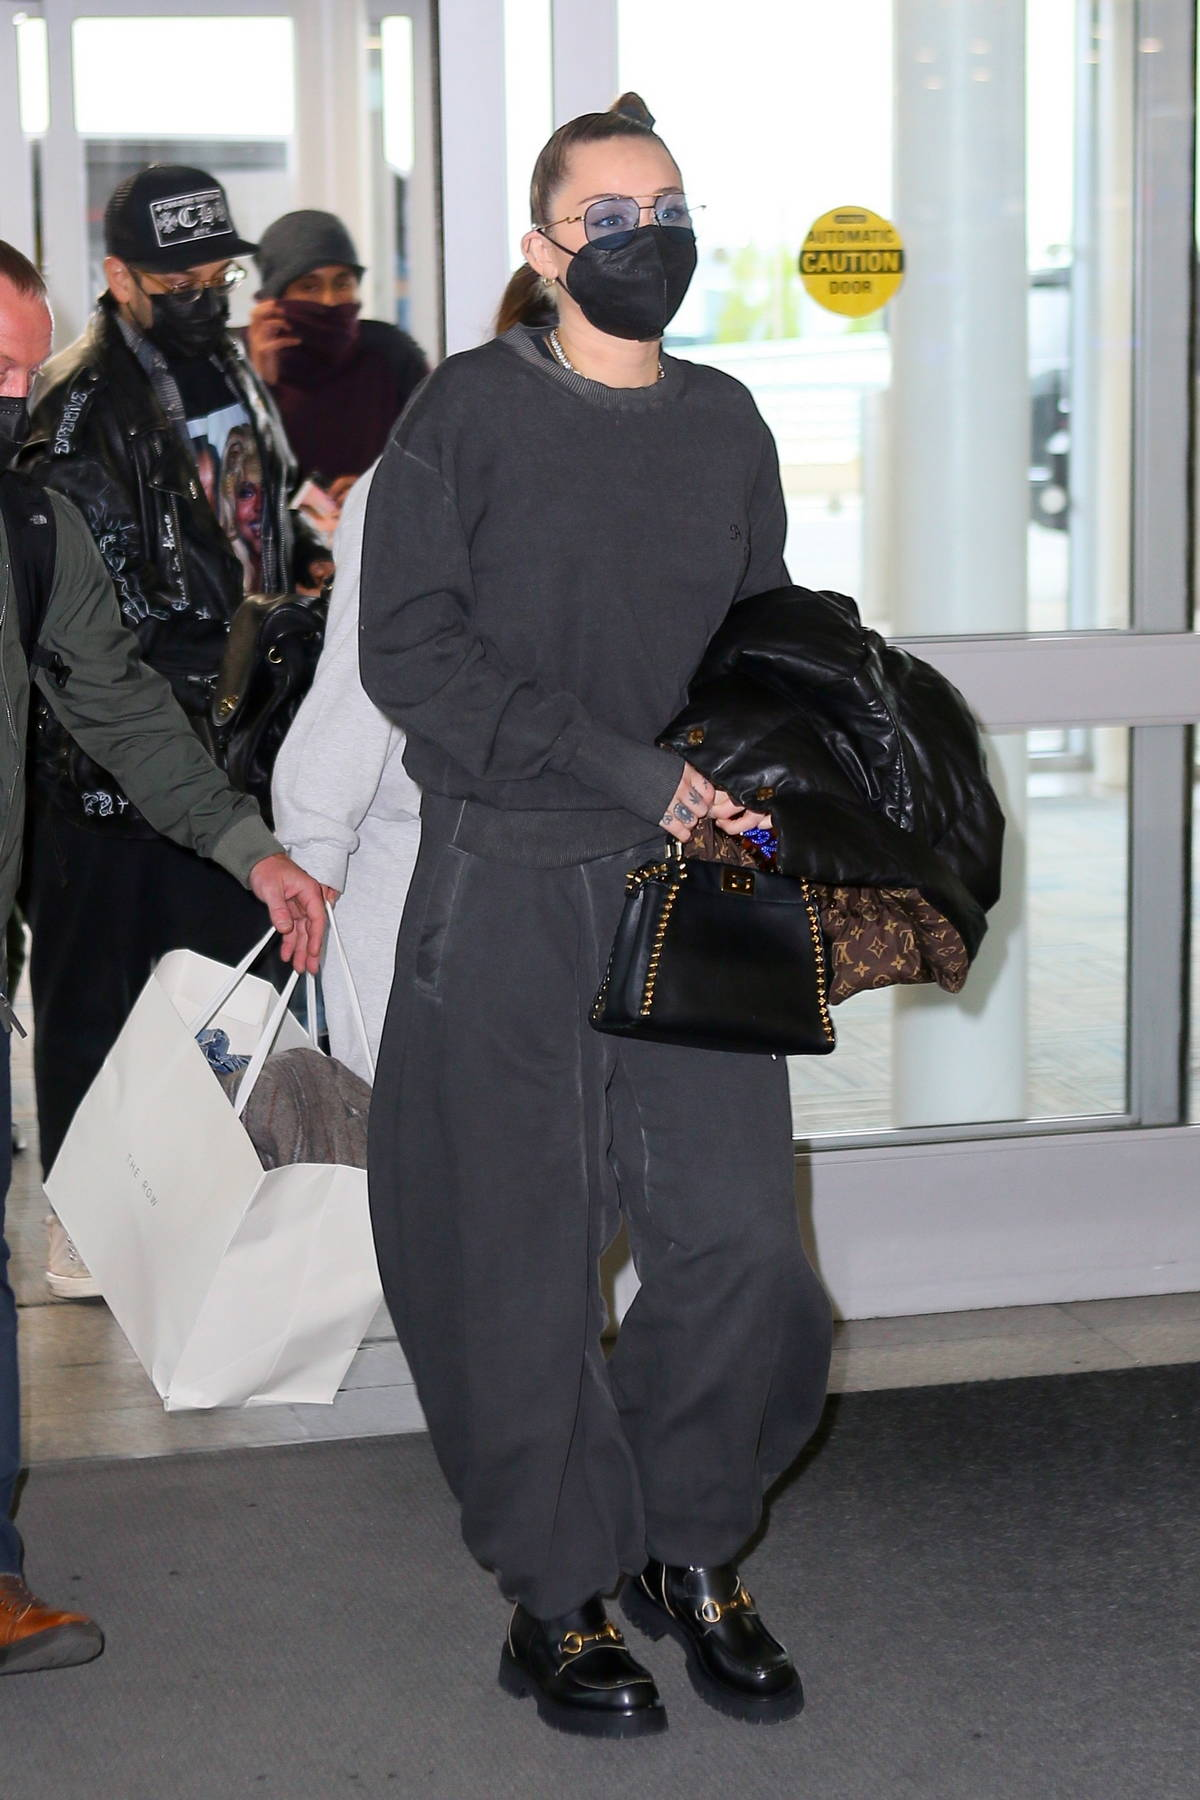 Miley Cyrus keeps it casual yet trendy in all-black while arriving at the JFK Airport in New York City